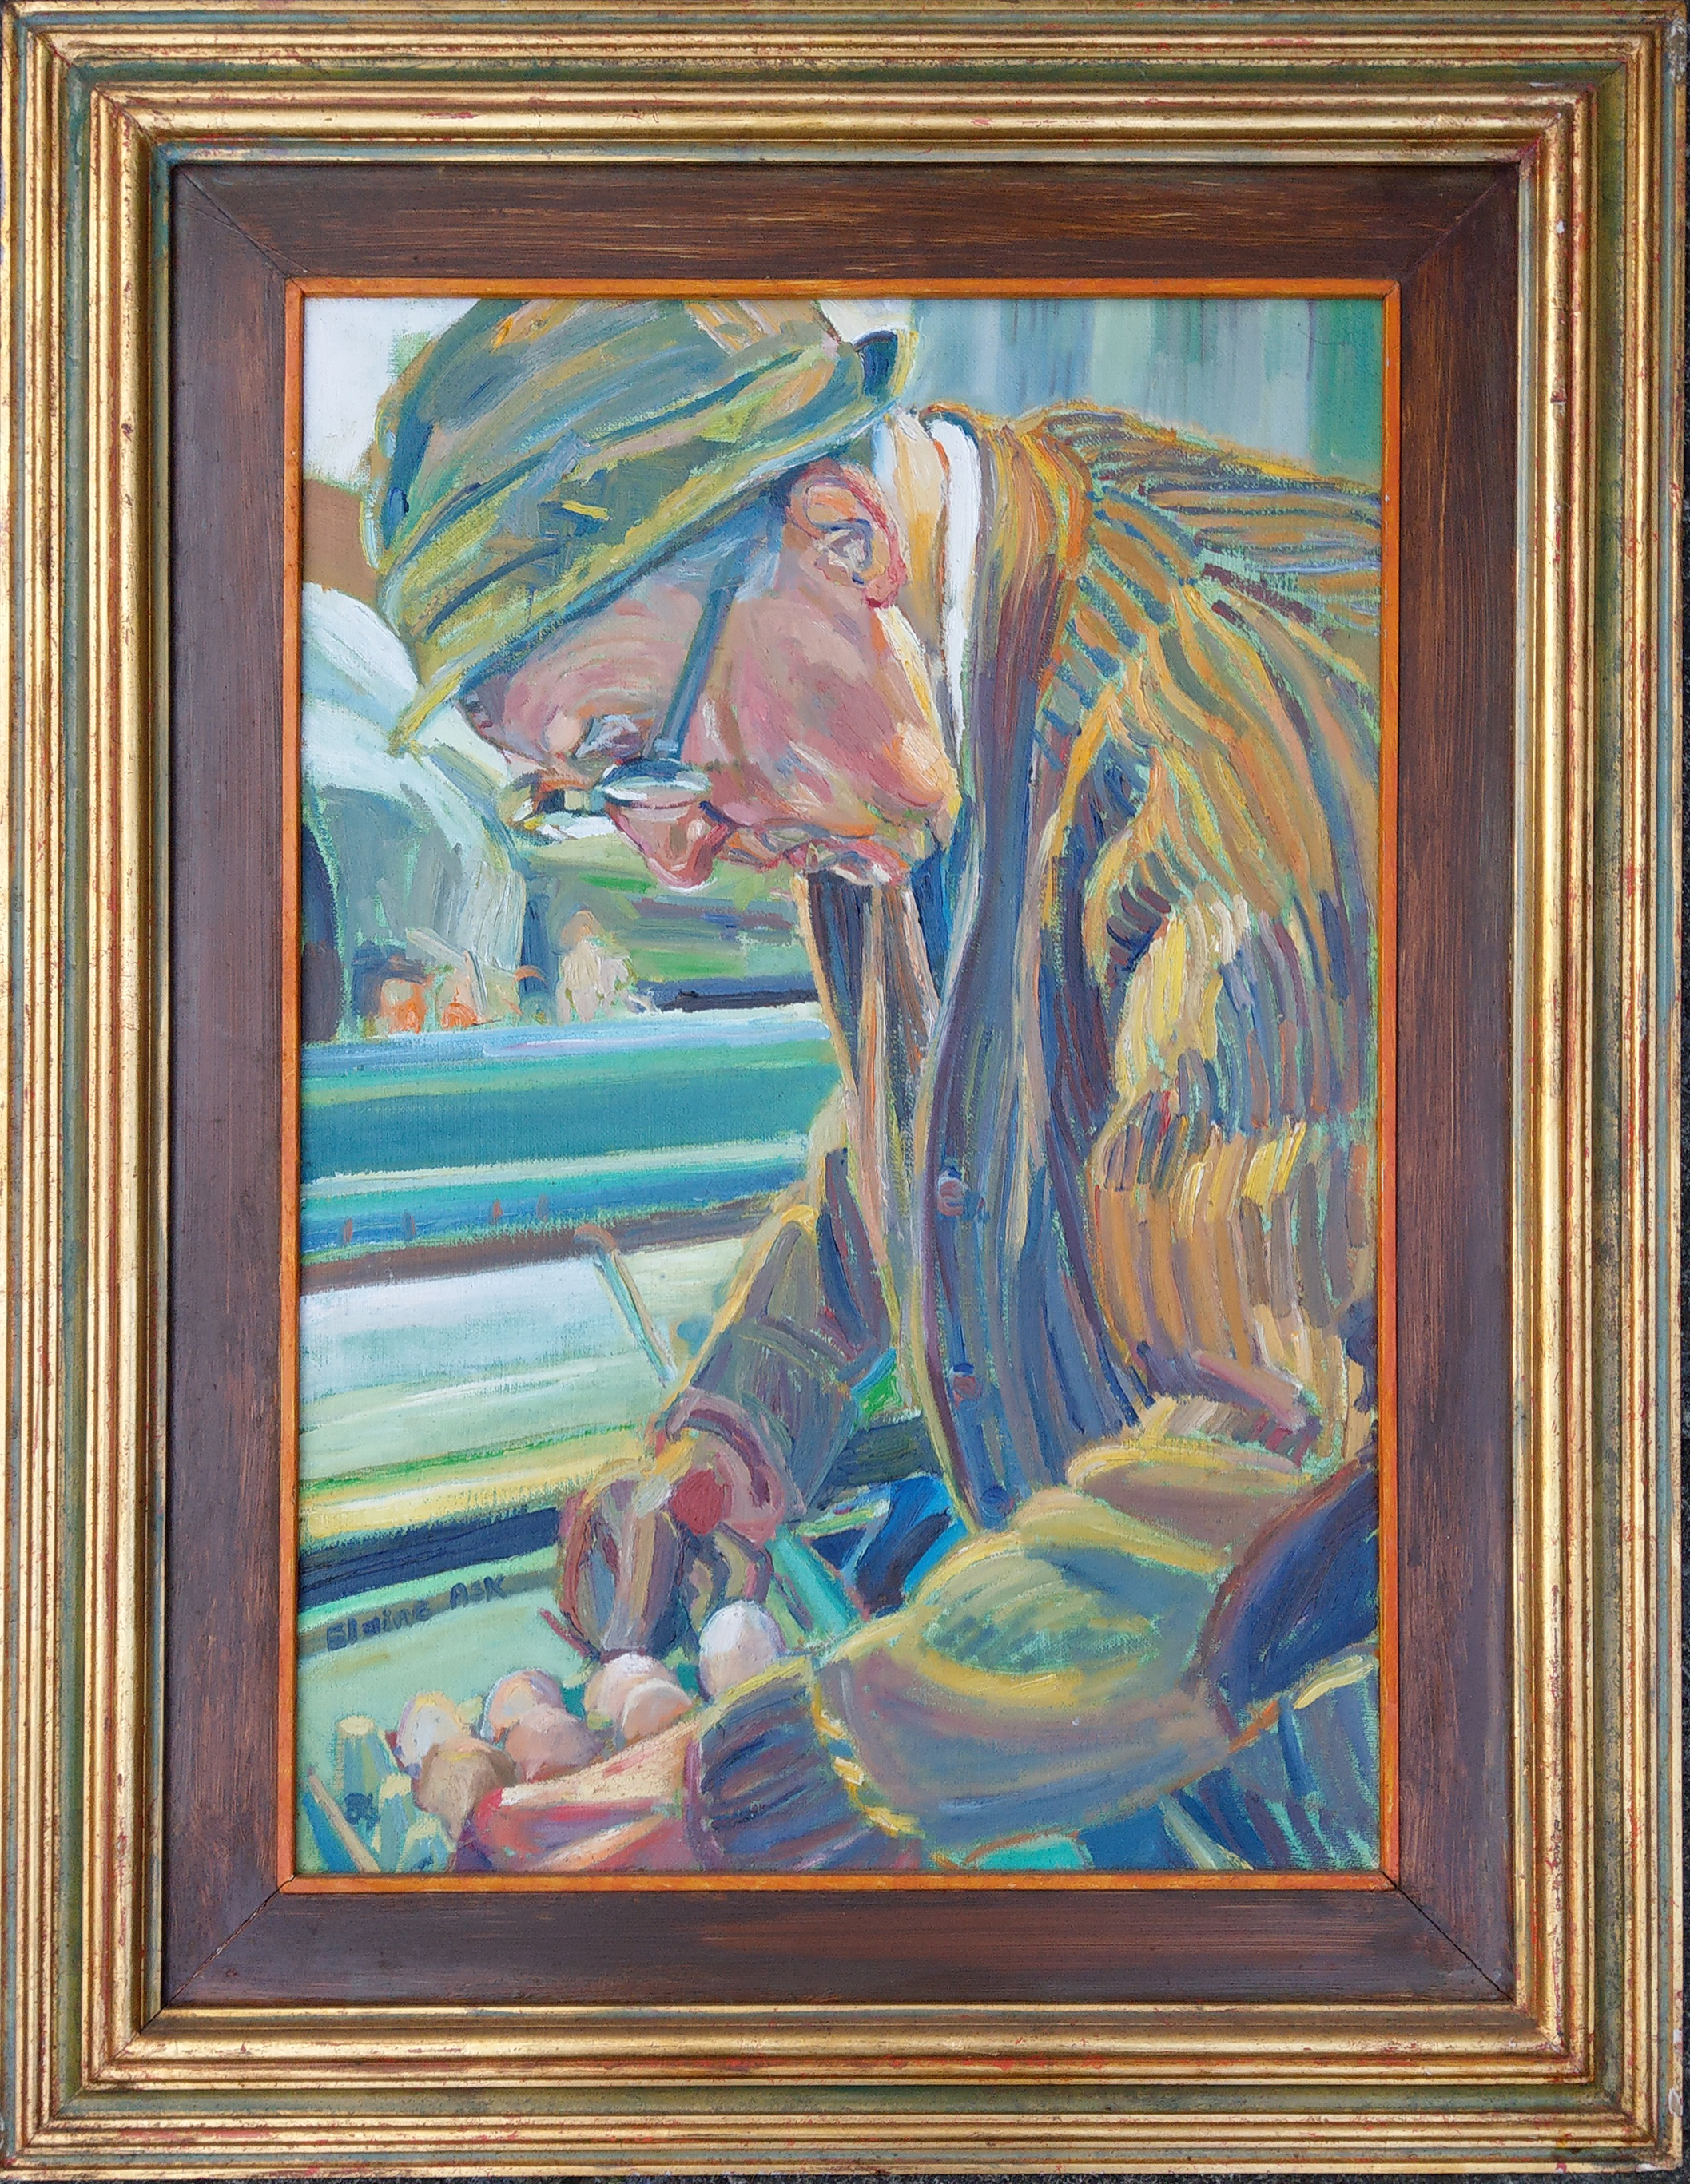 "Oil on canvass ""The Egg Man"" Signed Elaine Ask   1984 in a frame and made by the artist."